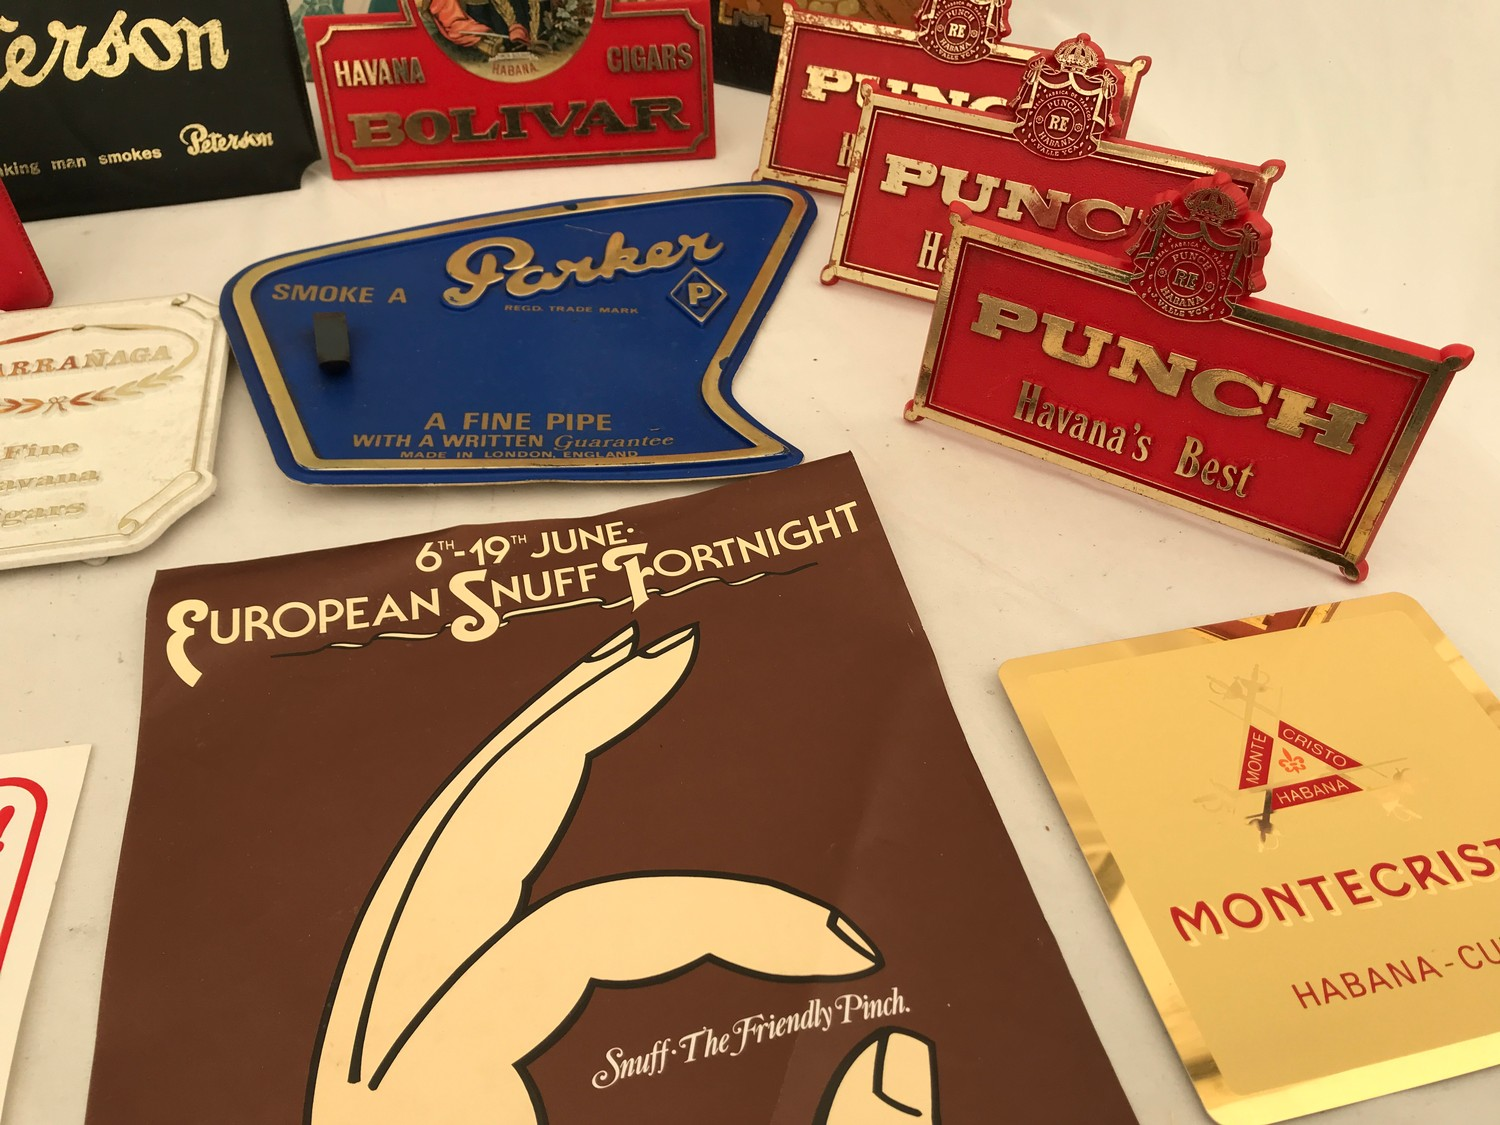 Tobacco shop metal and plastic cigar, cigarette and snuff advertising, Sobranie, Punch, Macanudo, - Image 6 of 7